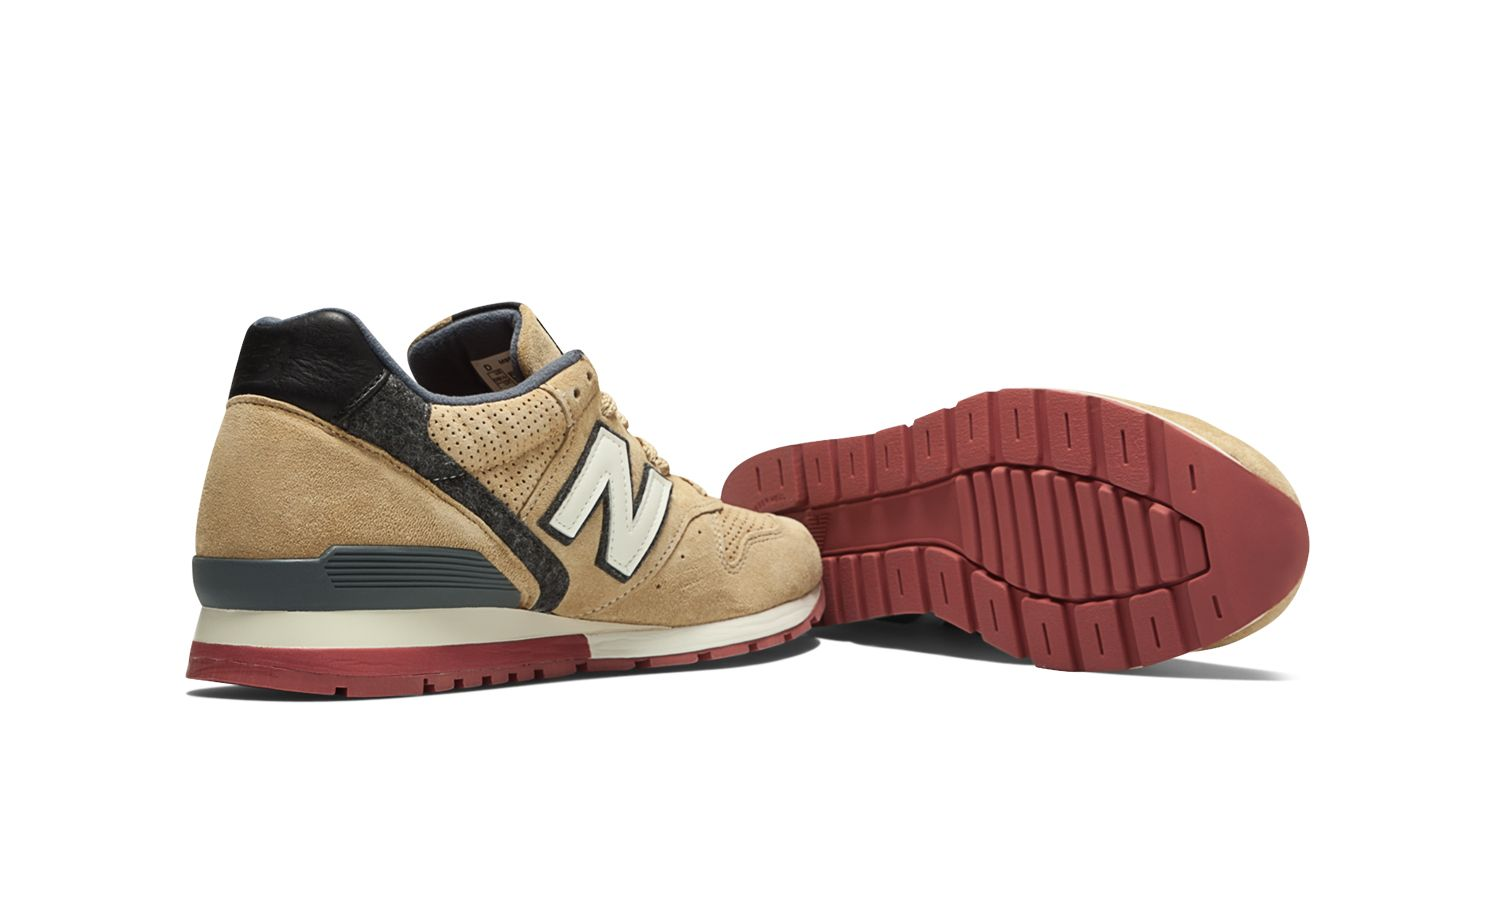 New Balance 996 Distinct Made in the USA